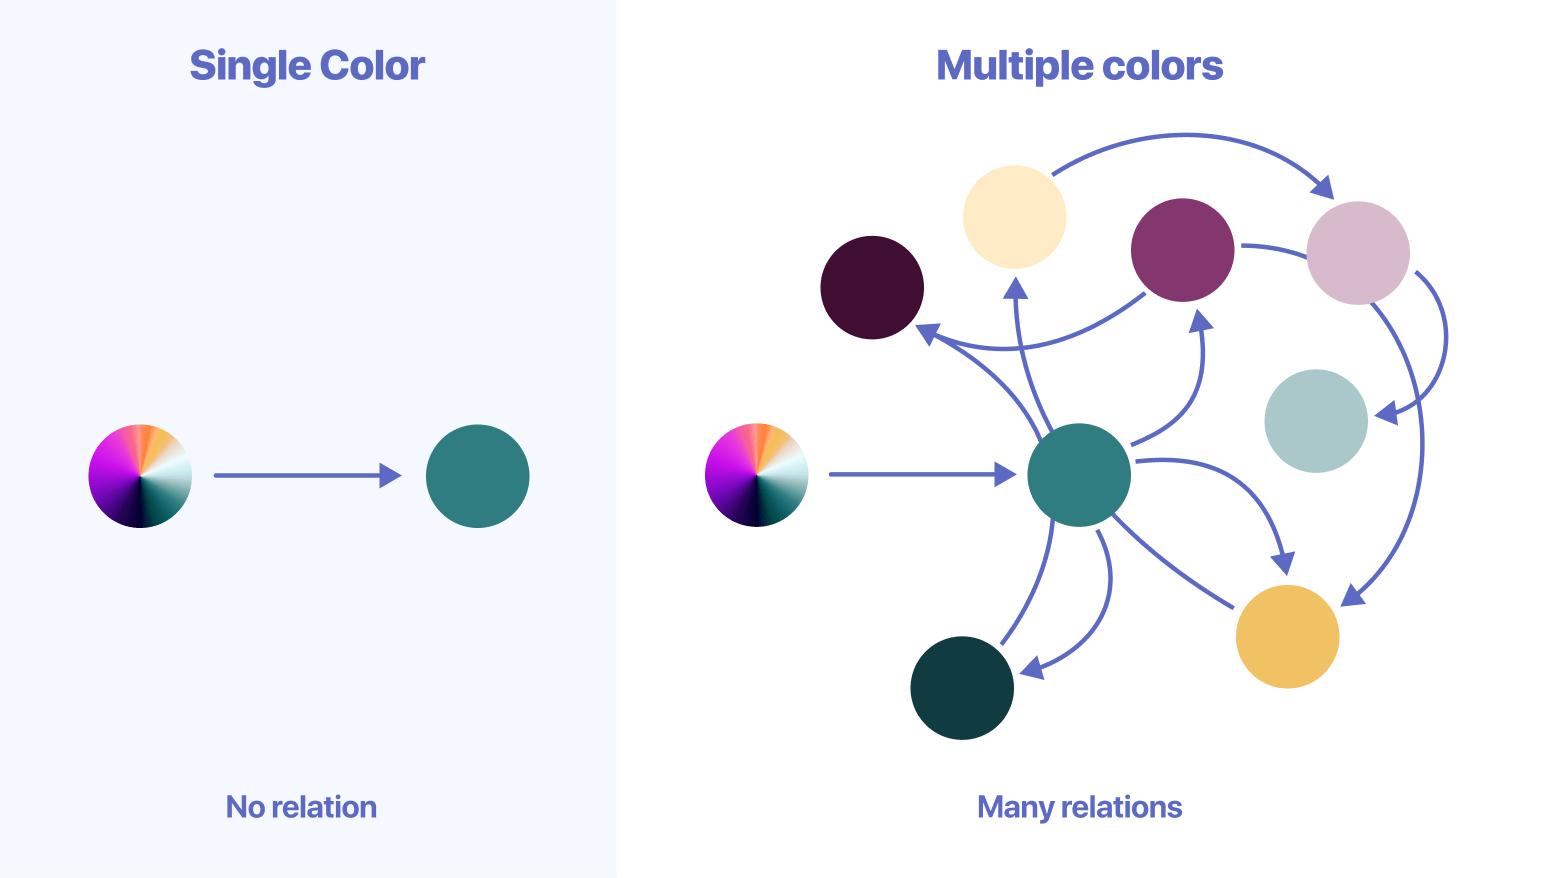 The number of relations grows exponentially with the number of colors